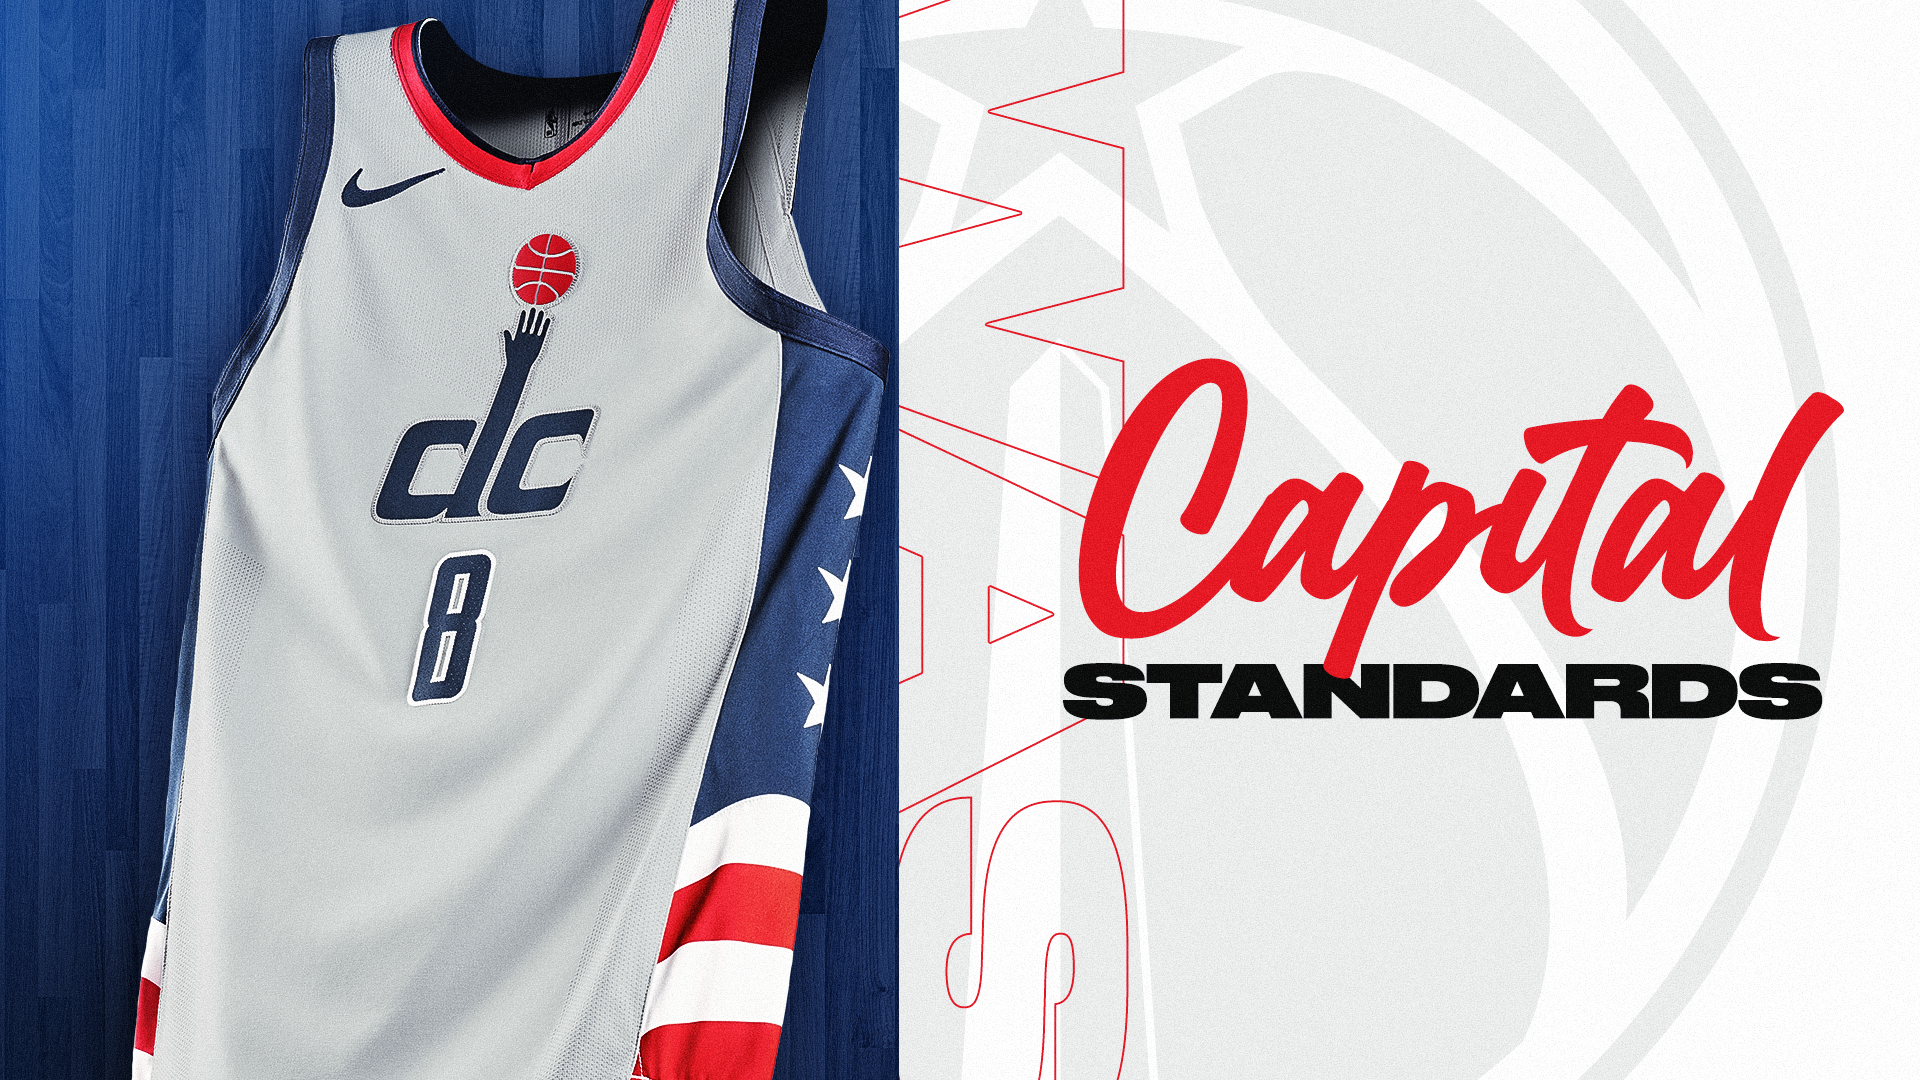 Washington Wizards: Capital Standards